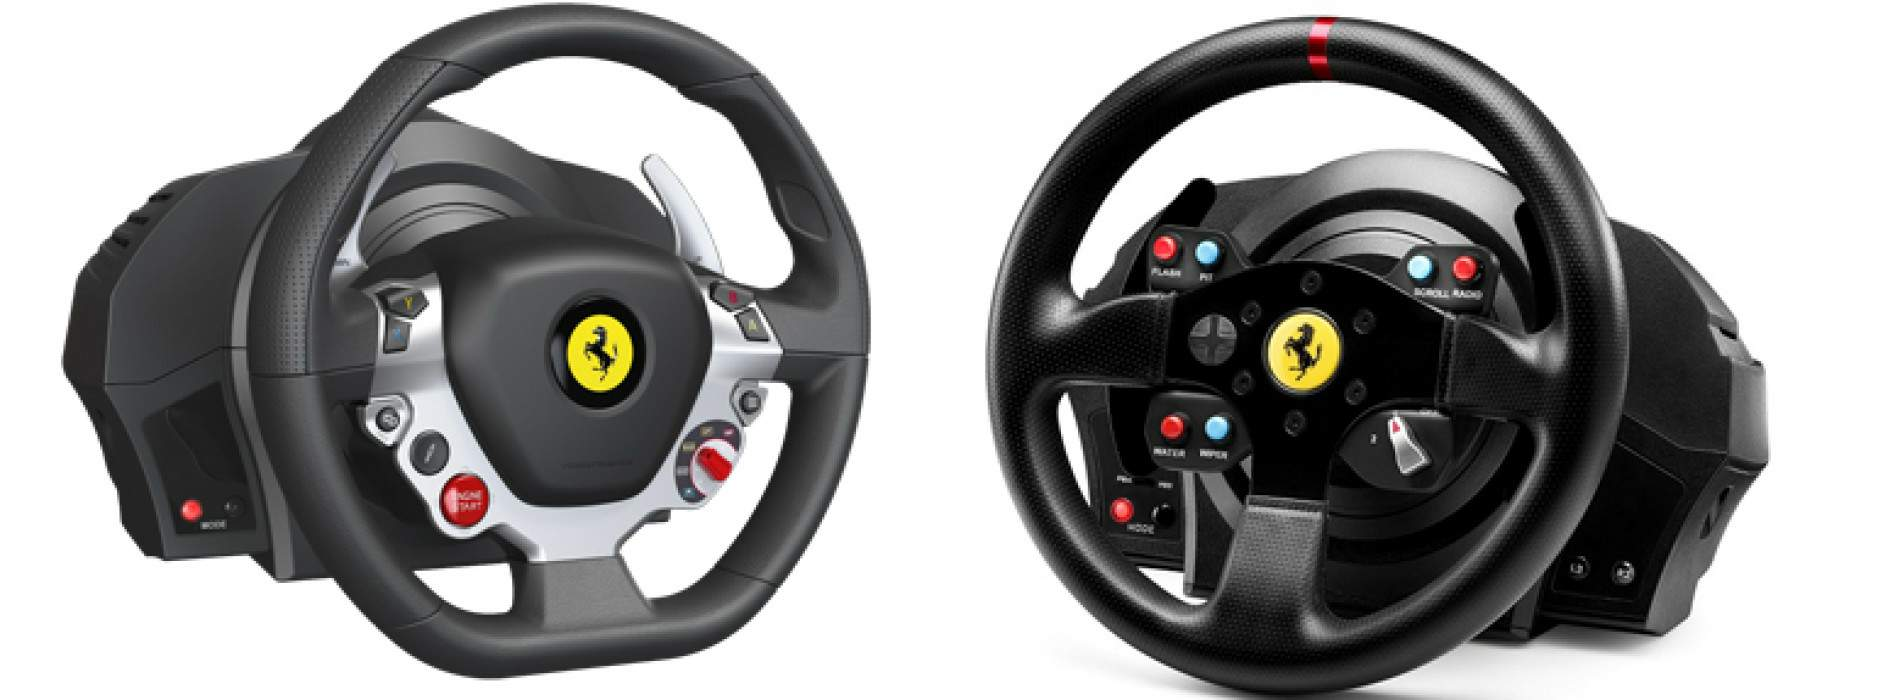 thrustmaster t300 ferrari gte y tx racing ferrari 458. Black Bedroom Furniture Sets. Home Design Ideas